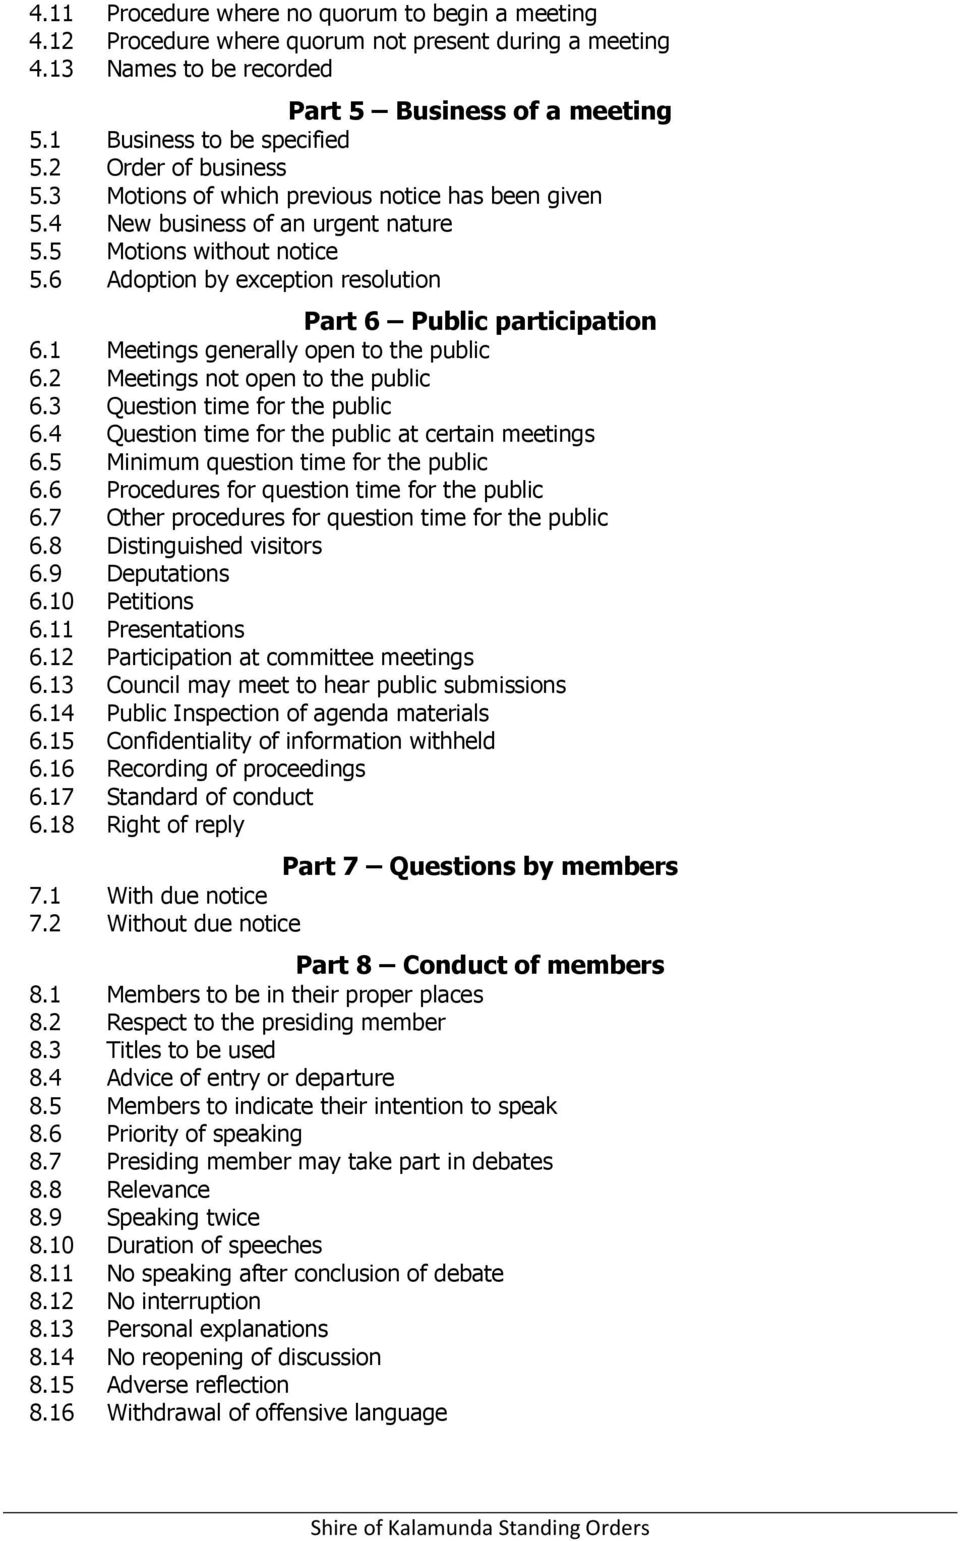 6 Adoption by exception resolution Part 6 Public participation 6.1 Meetings generally open to the public 6.2 Meetings not open to the public 6.3 Question time for the public 6.